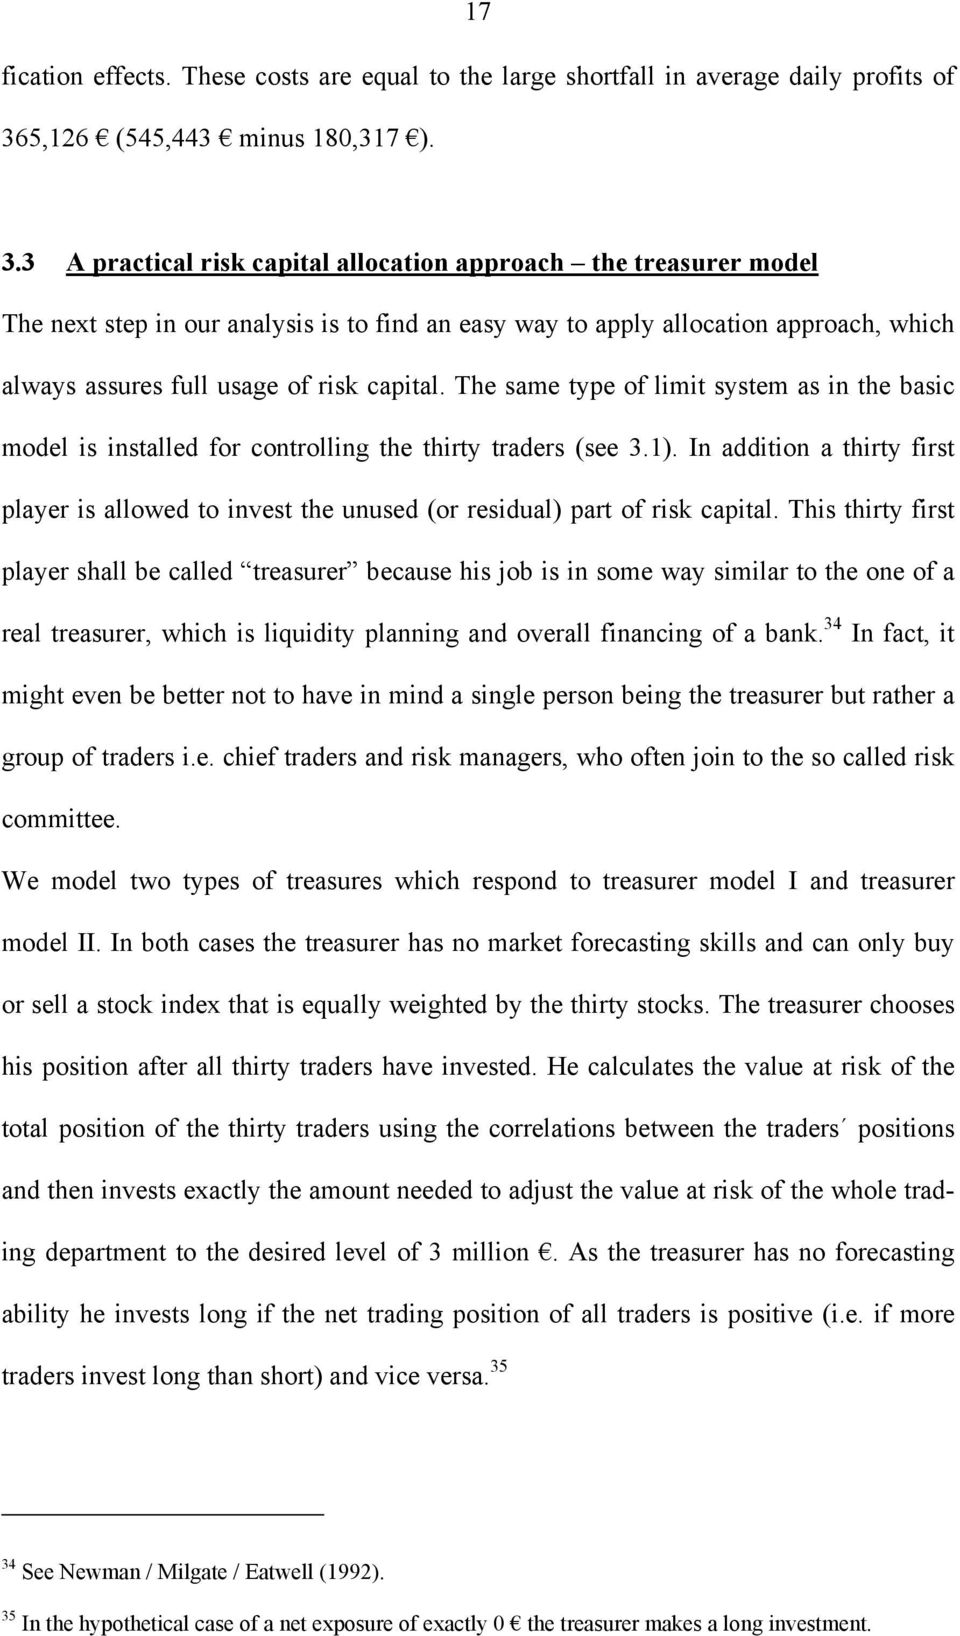 3 A practical risk capital allocation approach the treasurer model The next step in our analysis is to find an easy way to apply allocation approach, which always assures full usage of risk capital.